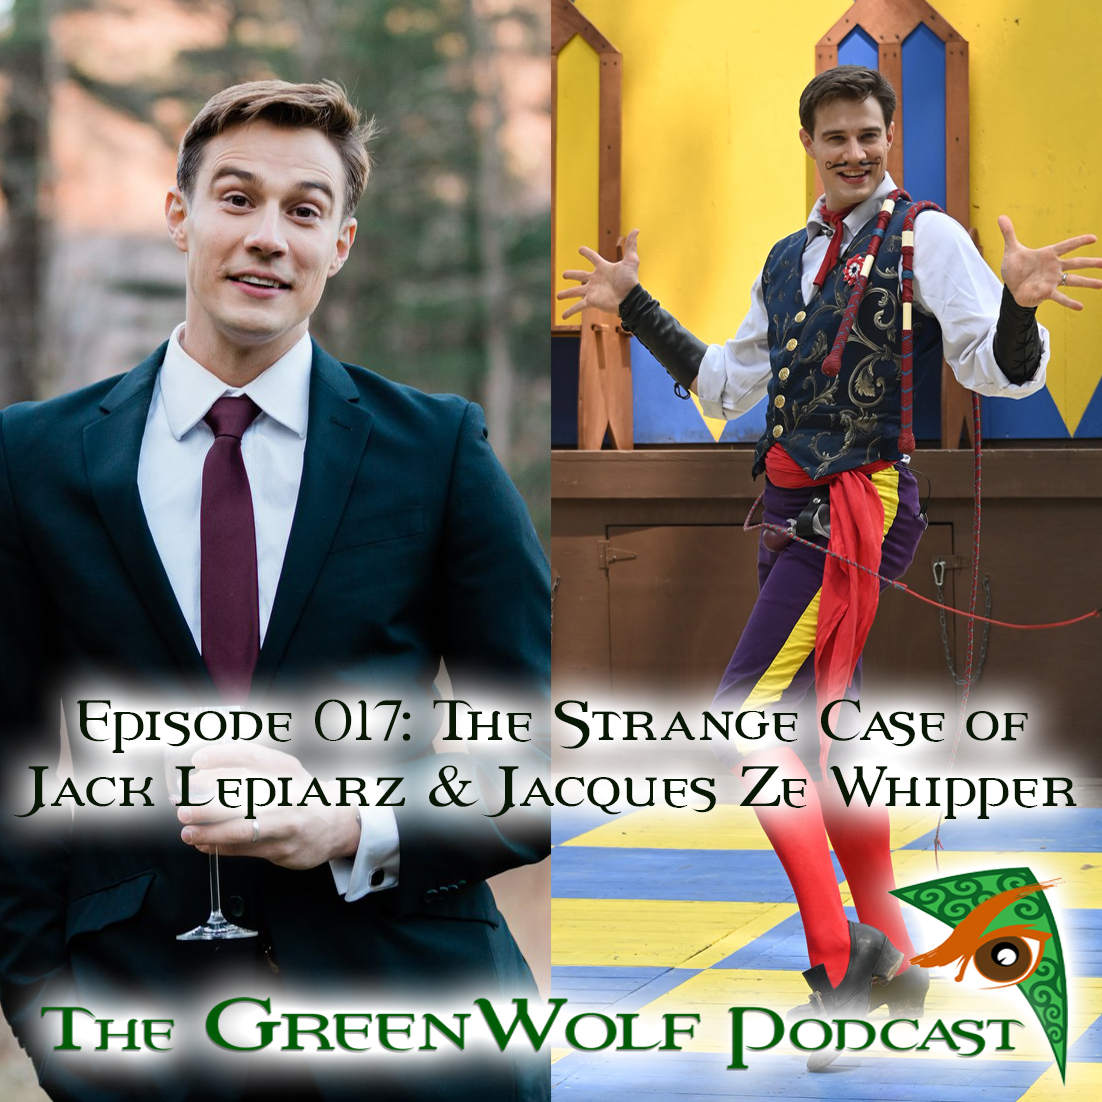 The GreenWolf Podcast - Ep 017- The Strange Case of Jack Lepiarz & Jacques Ze Whipper